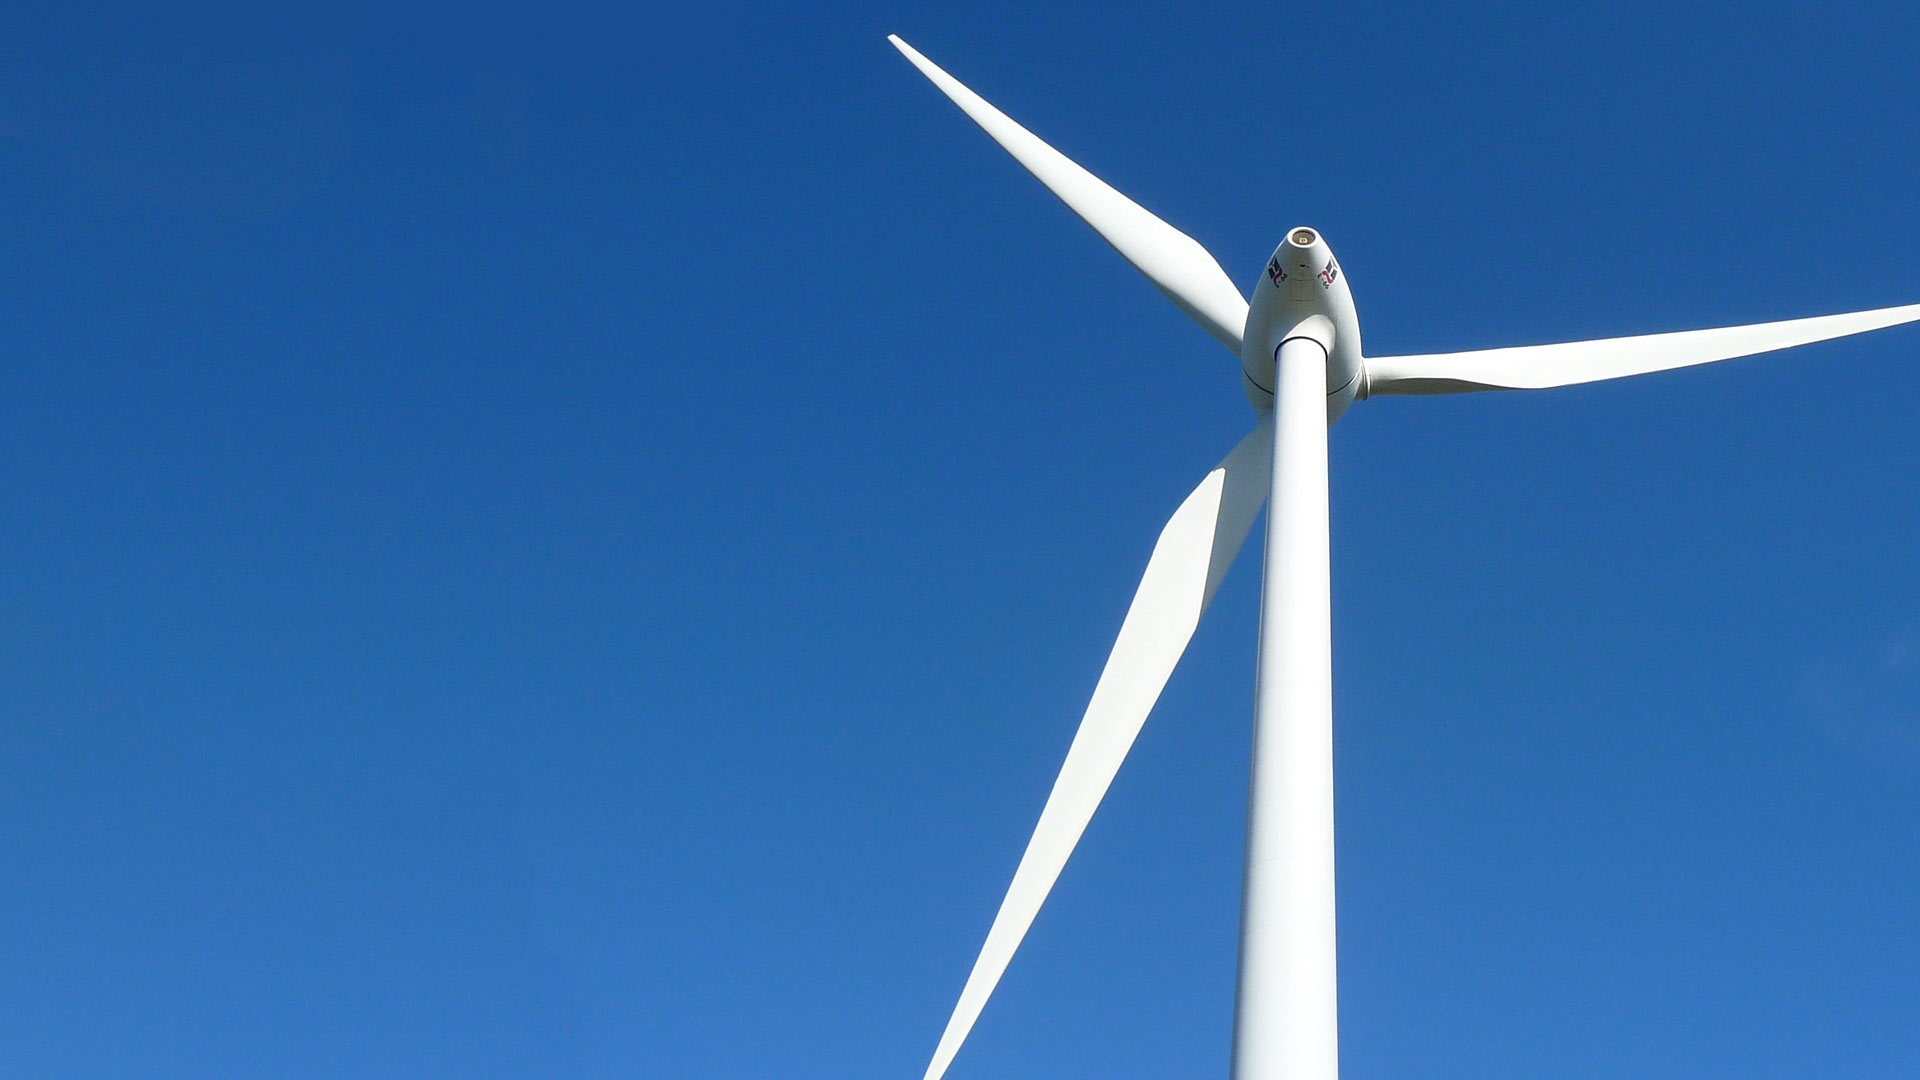 Wind Power, Wind Turbine hero